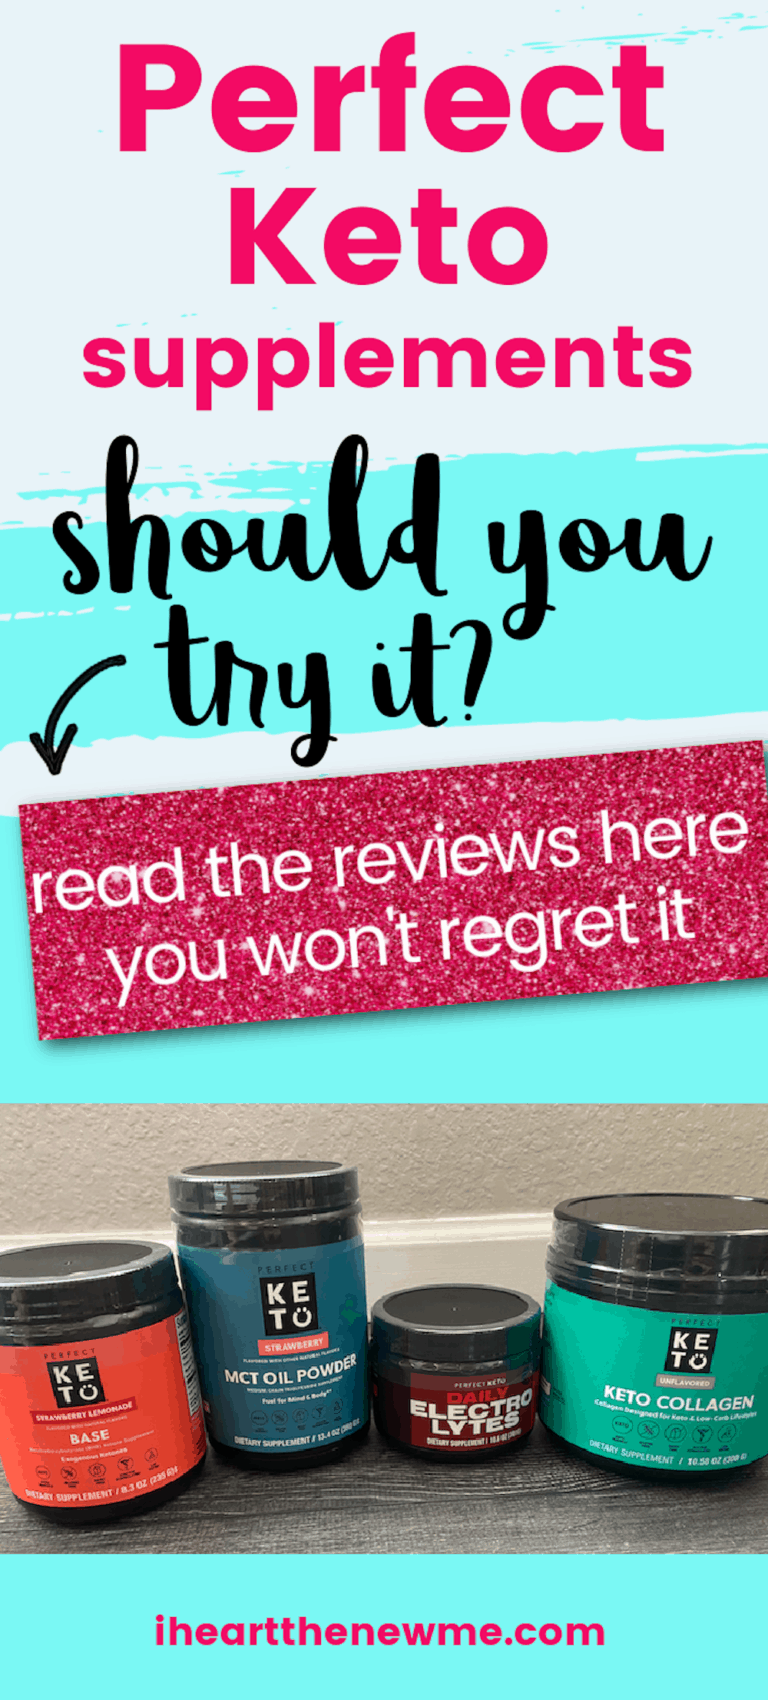 My Perfect Keto Review – Read Before You Buy!